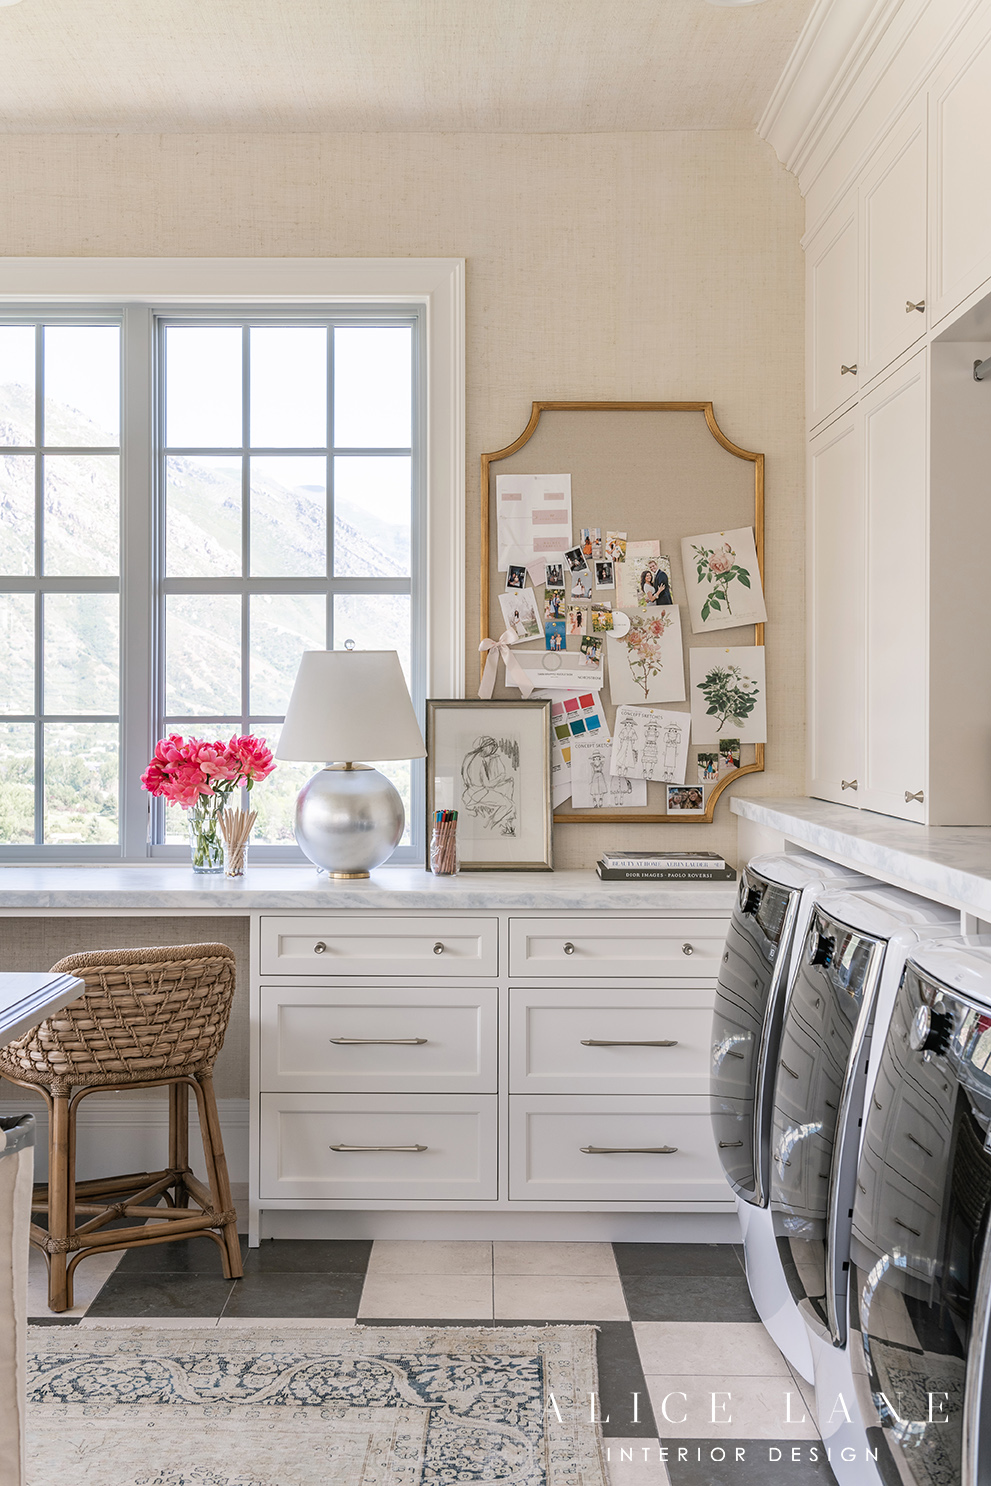 The Parcell Laundry Room | Alice Lane Interior Design | Photo by Rebekah Westover